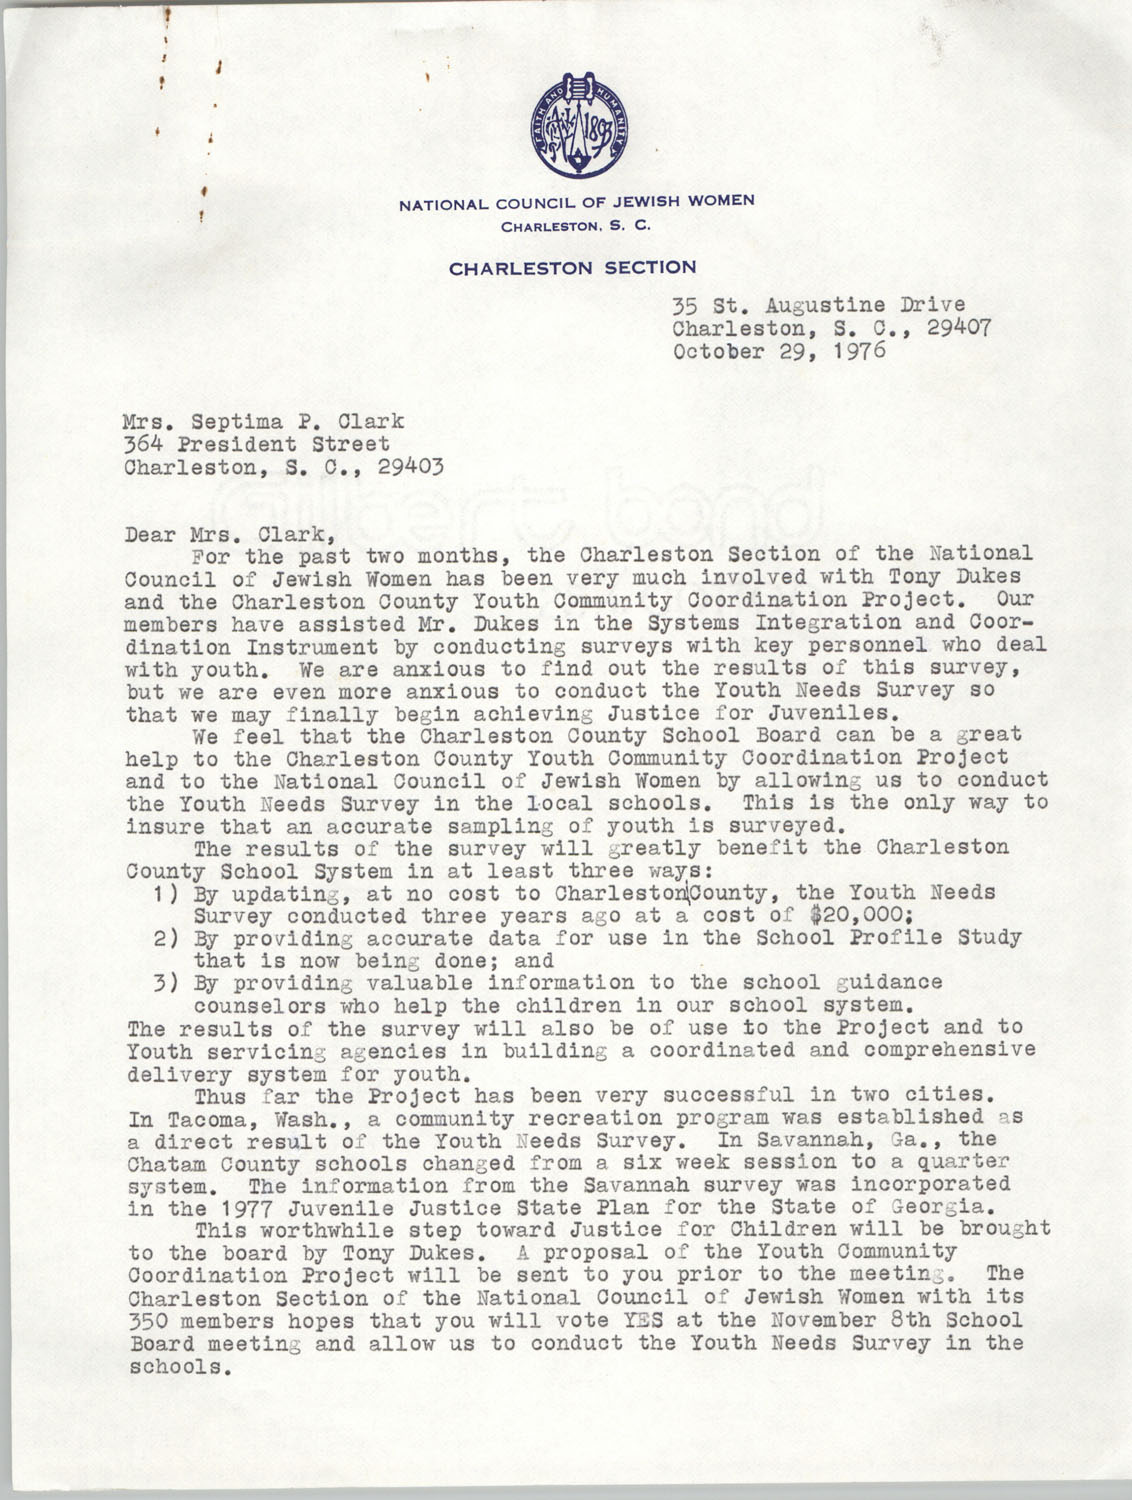 Letter from Ann M. Hellman to Septima P. Clark, October 29, 1976